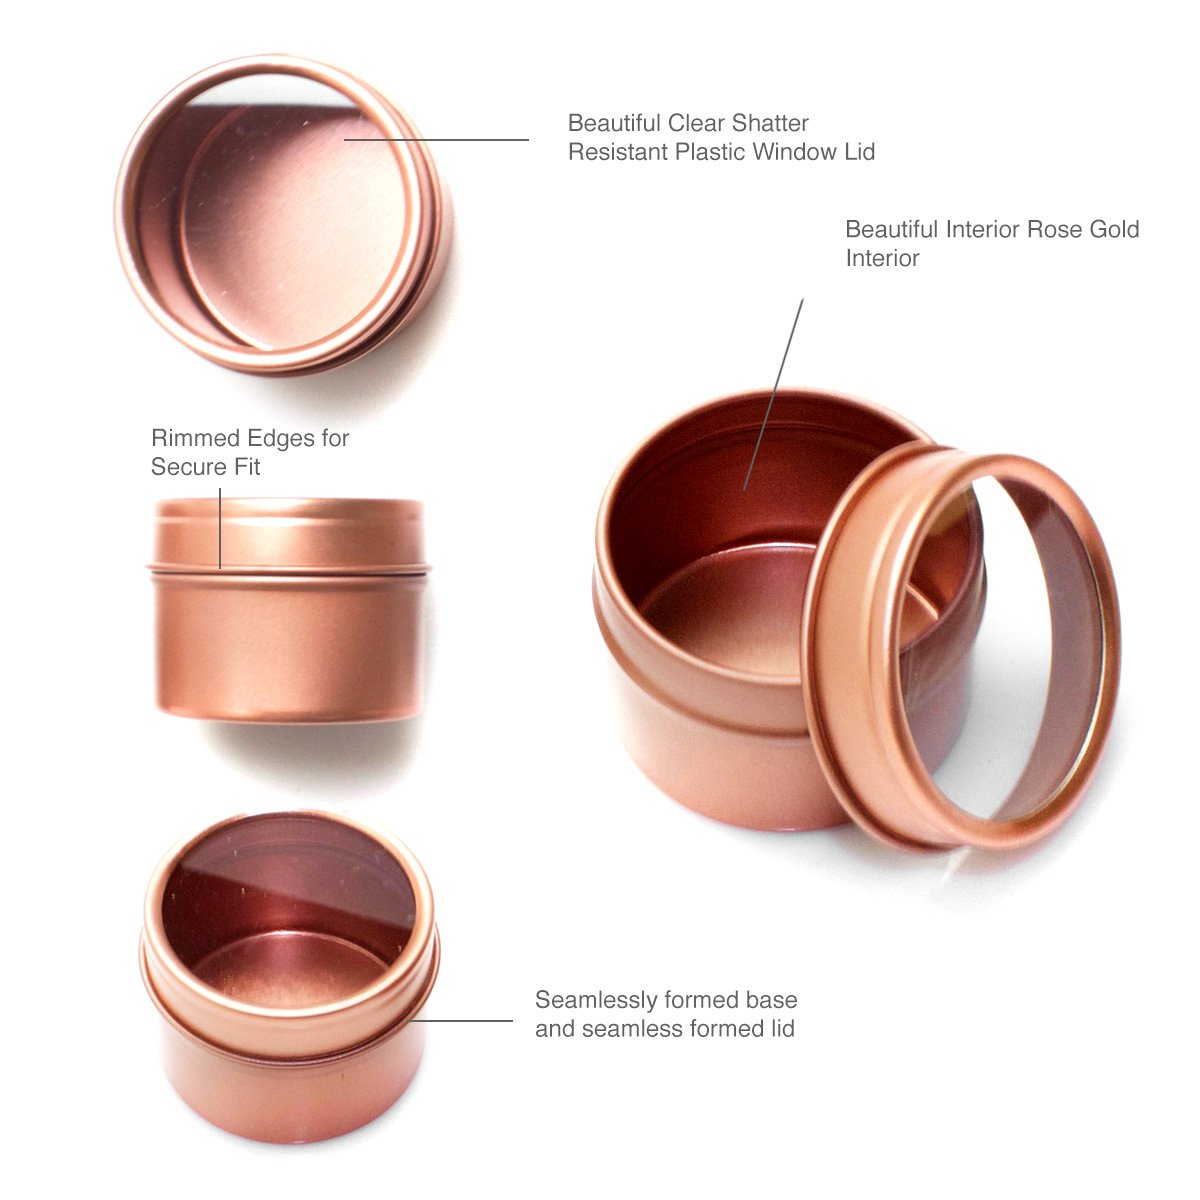 Craft Clouds Mimi Pack 4 oz Deep Round Clear Window Metal Tin Container Slip Top Lid For Salves, Favors, Spices, Balms, Candles, Gifts Limited Run Series 24 Pack (Rose Gold)